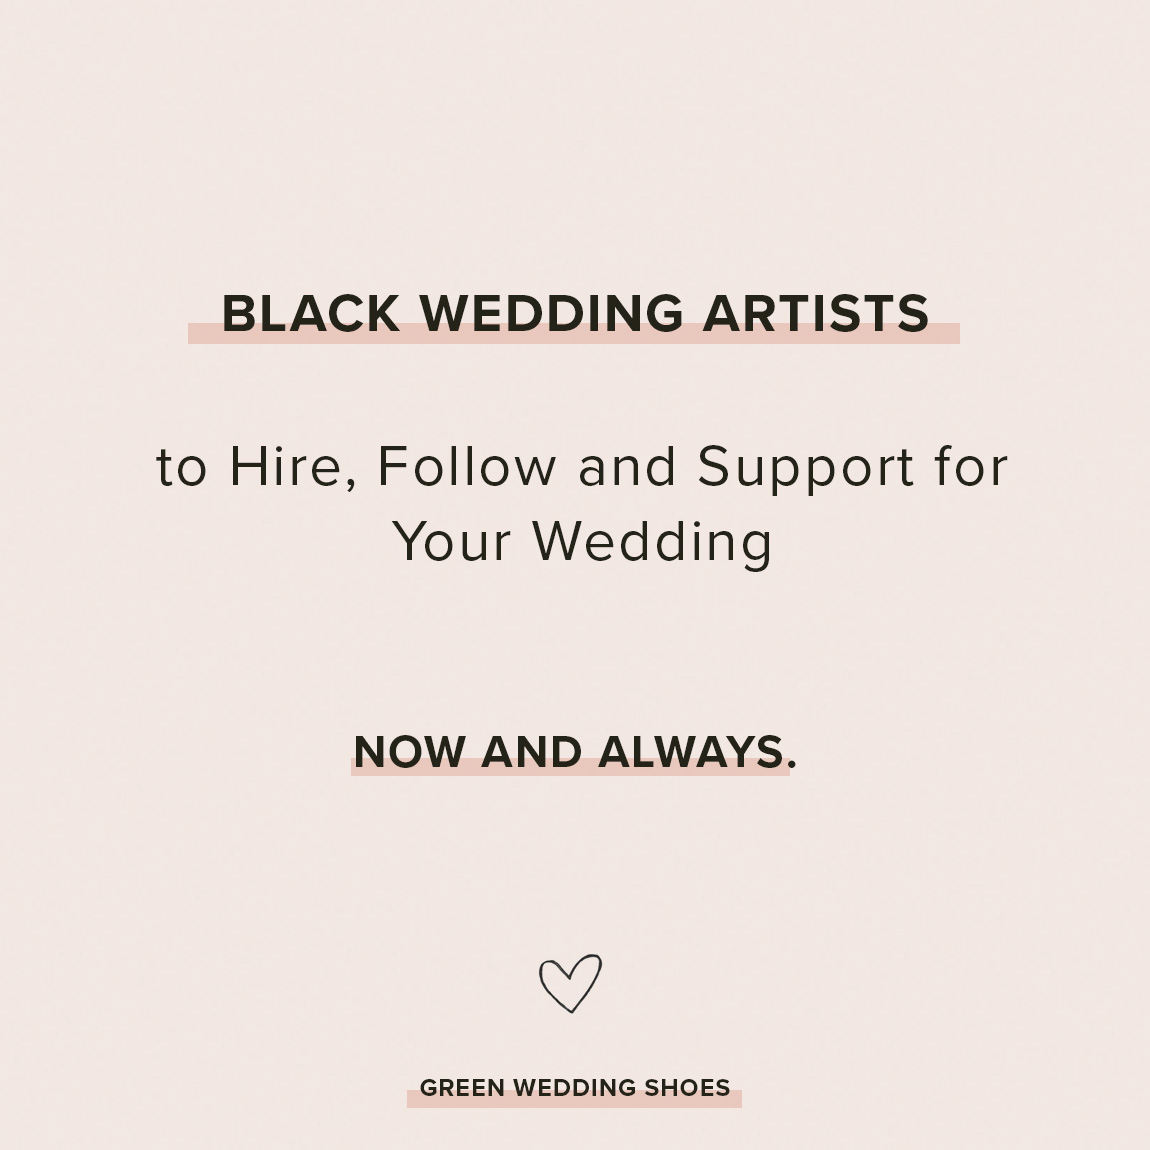 Black Wedding Professionals for your Wedding Day